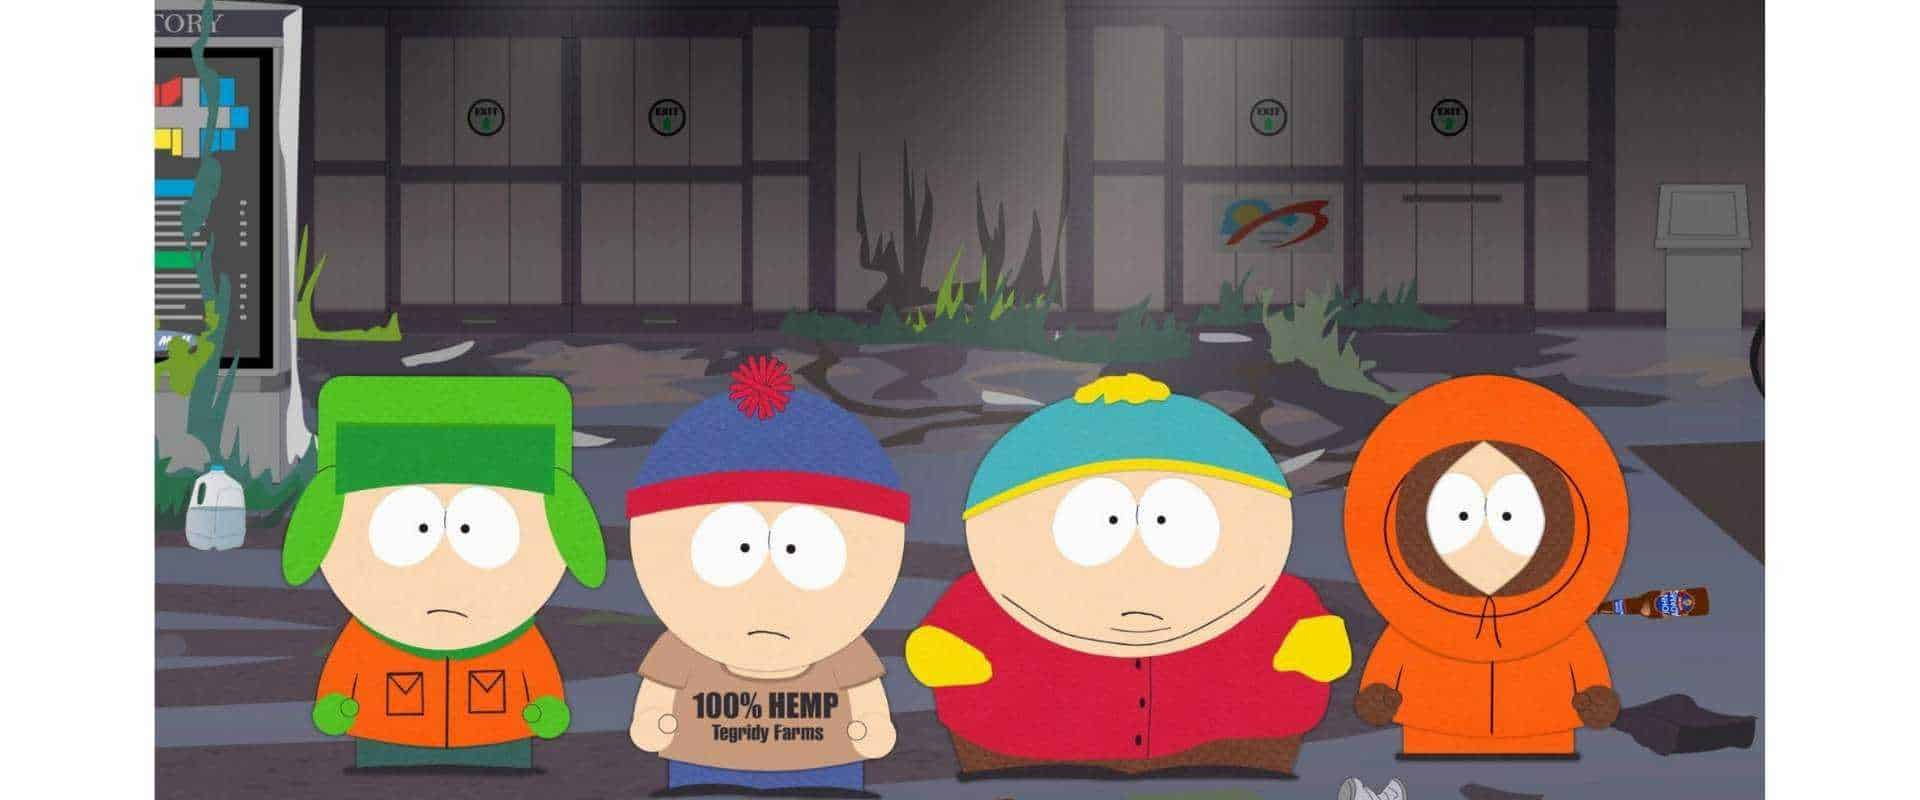 South Park is the best example of cut-out animation